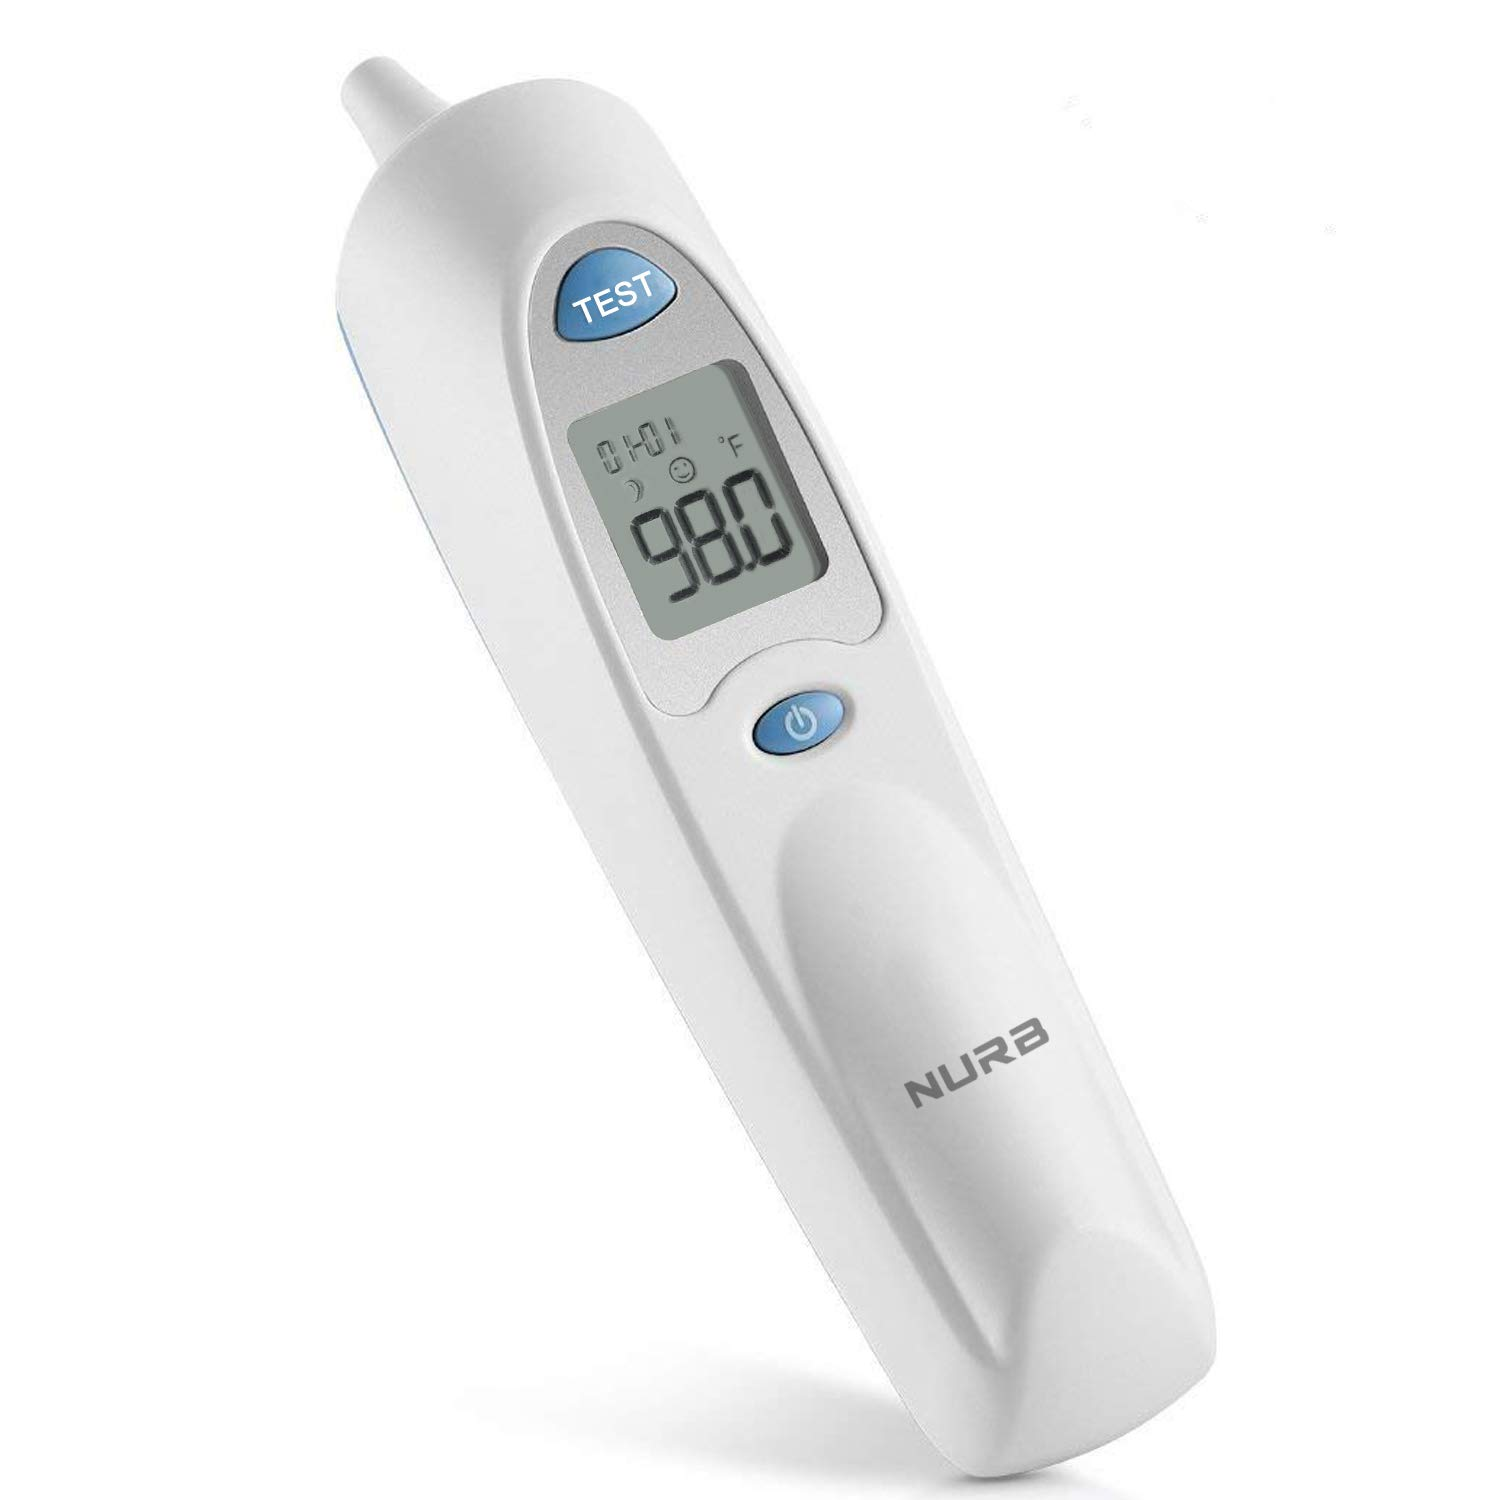 Ear Thermometer, Nurb Infrared Digital Thermometer Suitable for Baby, Infant, Kids, Toddler and Adults with Fever Indicator FDA and CE Approved.(Battery + 20ct Lens Filters Included)